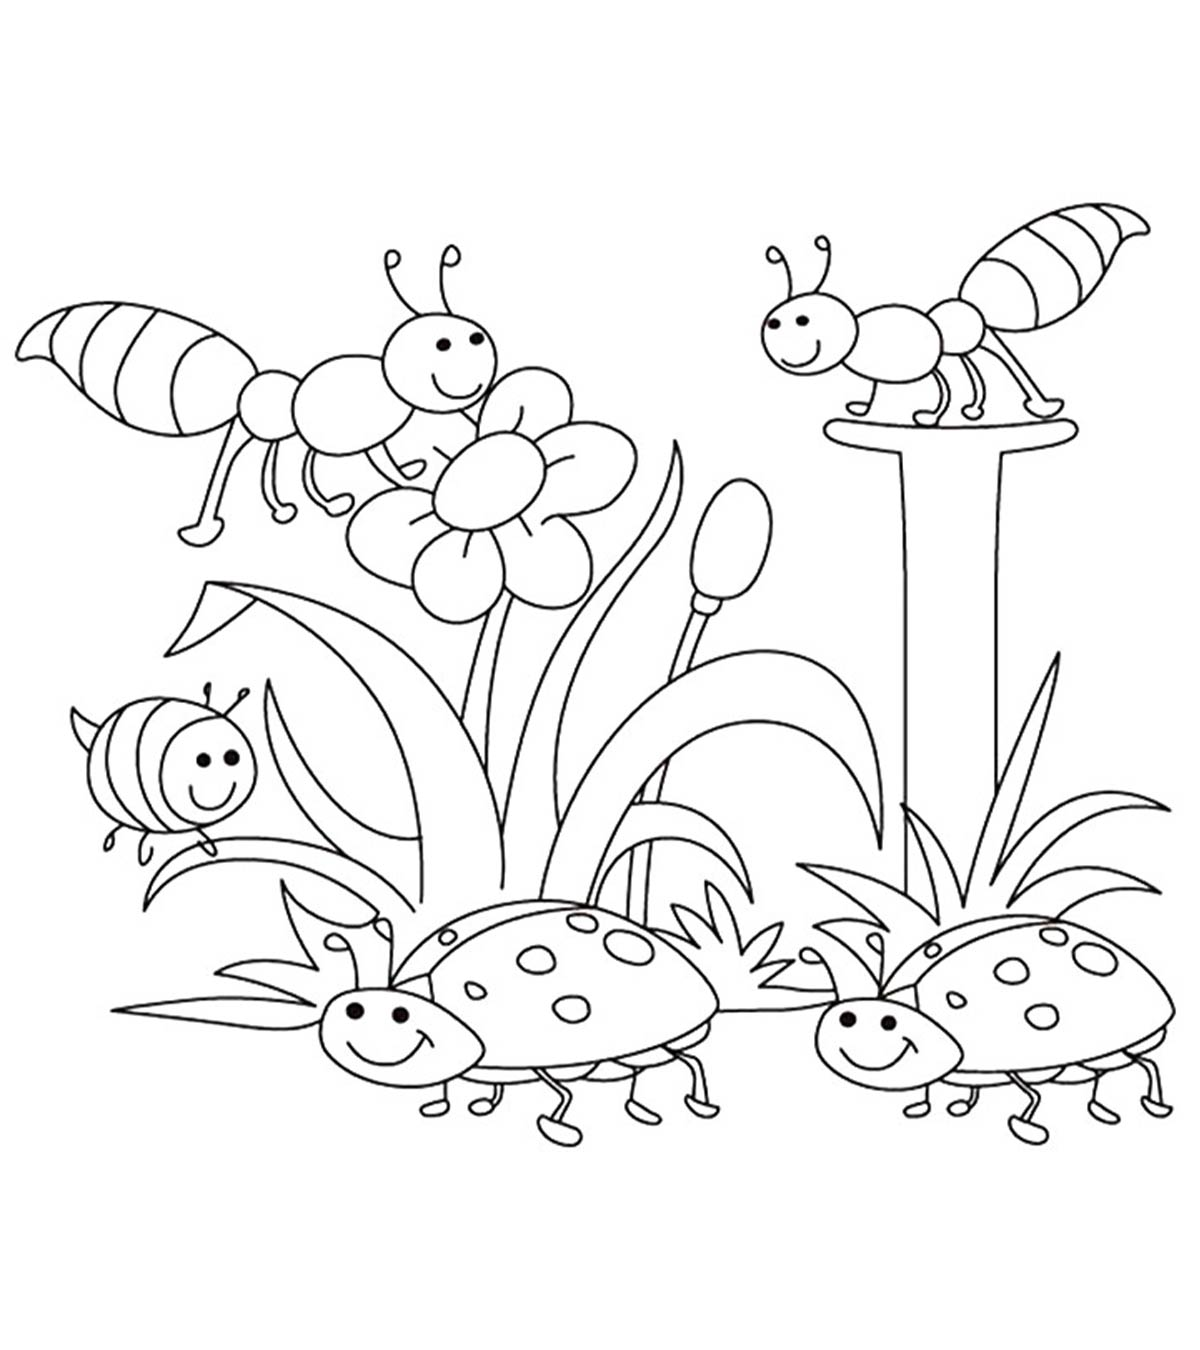 Top 35 Free Printable Spring Coloring Pages Online.